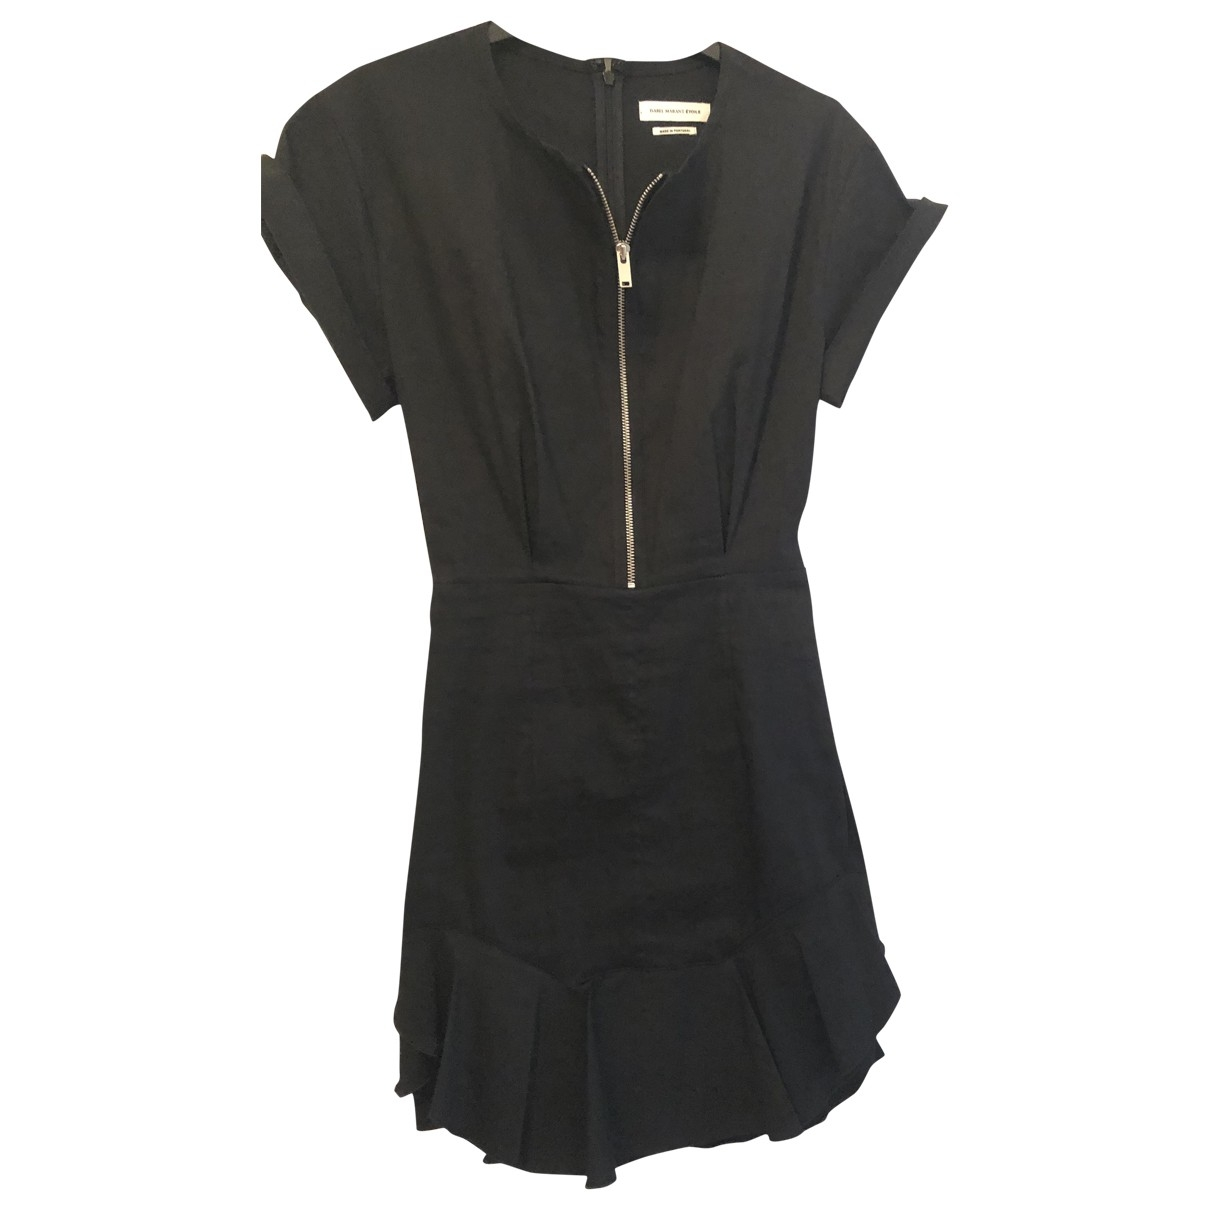 Isabel Marant Etoile \N Black Cotton - elasthane dress for Women 36 FR